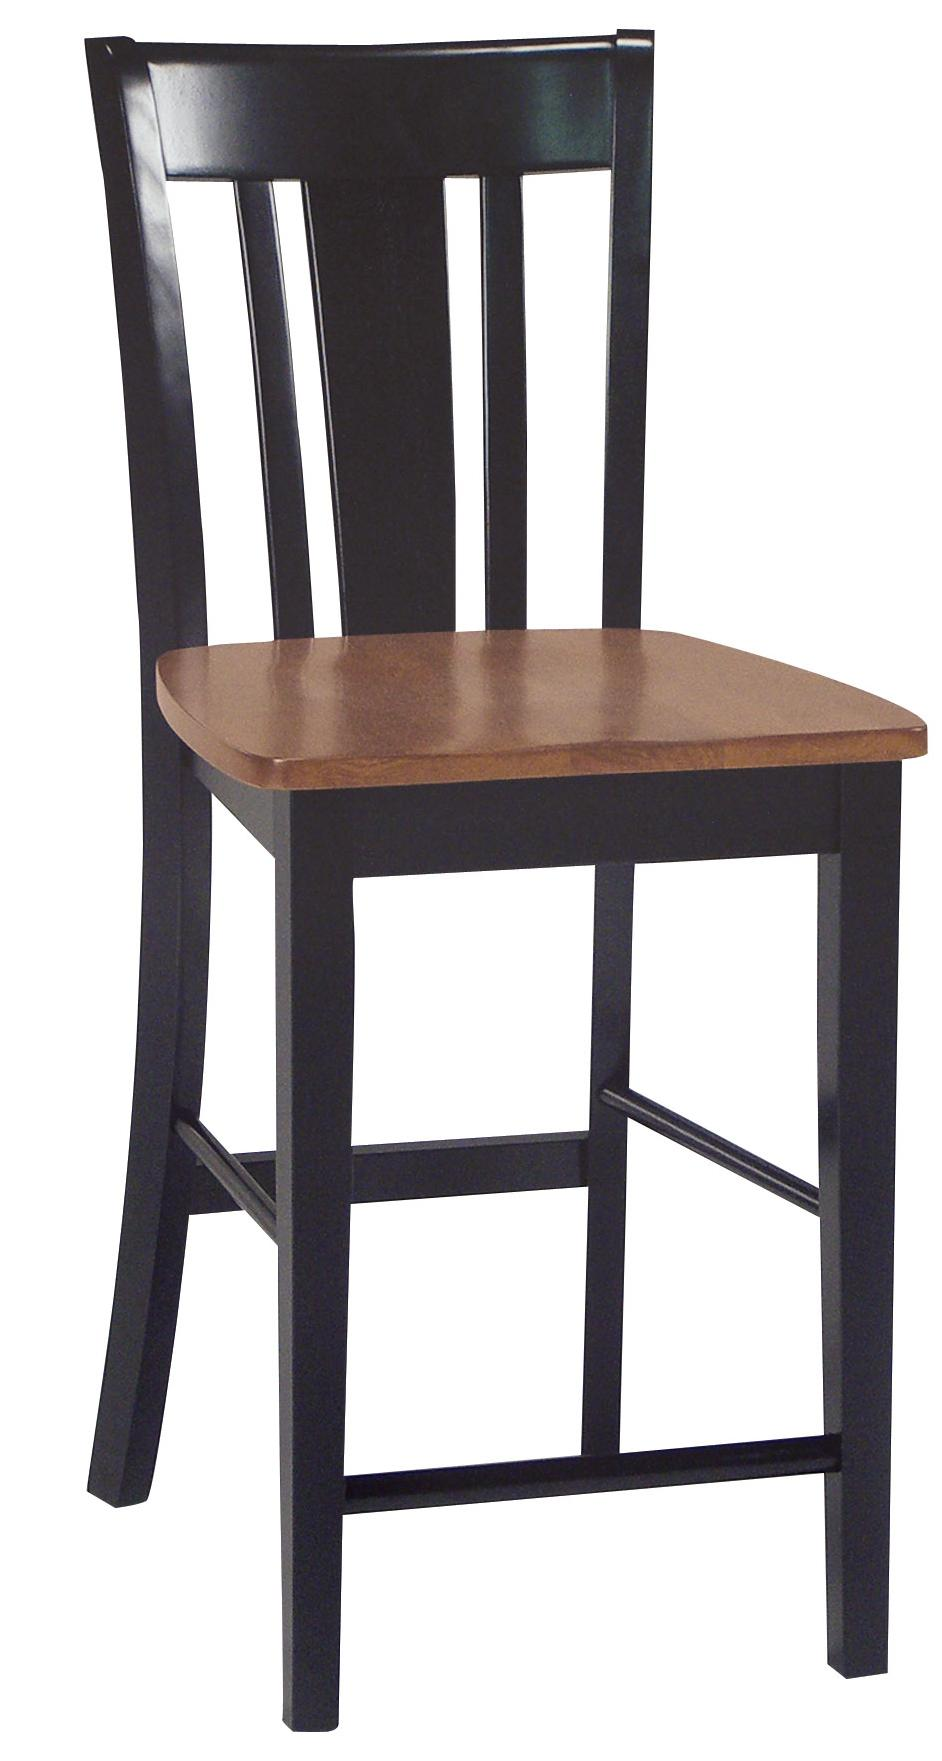 John thomas dining essentials splat back bar chair reeds for Dining room essentials